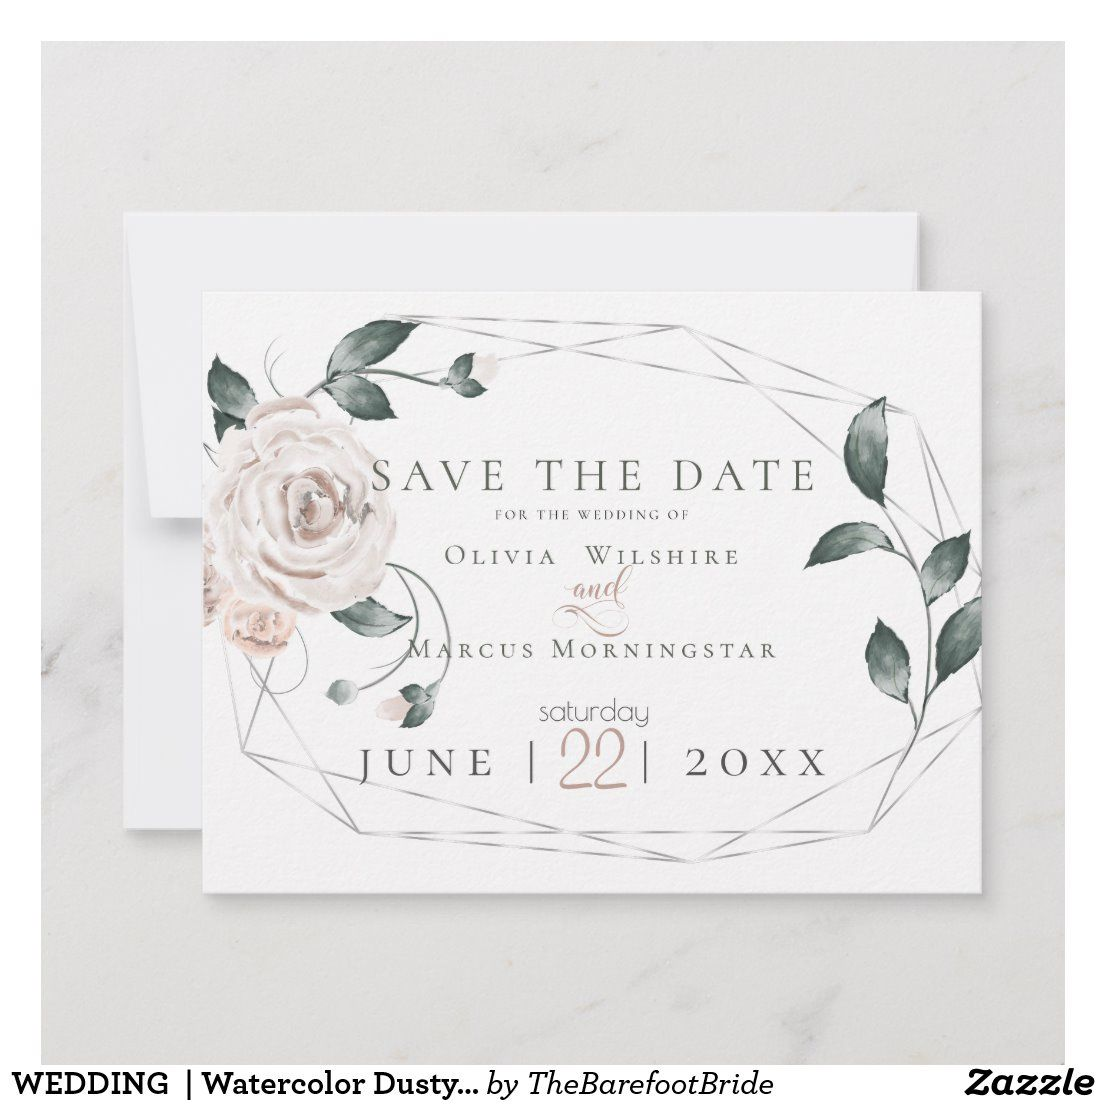 Watercolour Subtle Dusty Pink Personalized Wedding Save The Date Cards